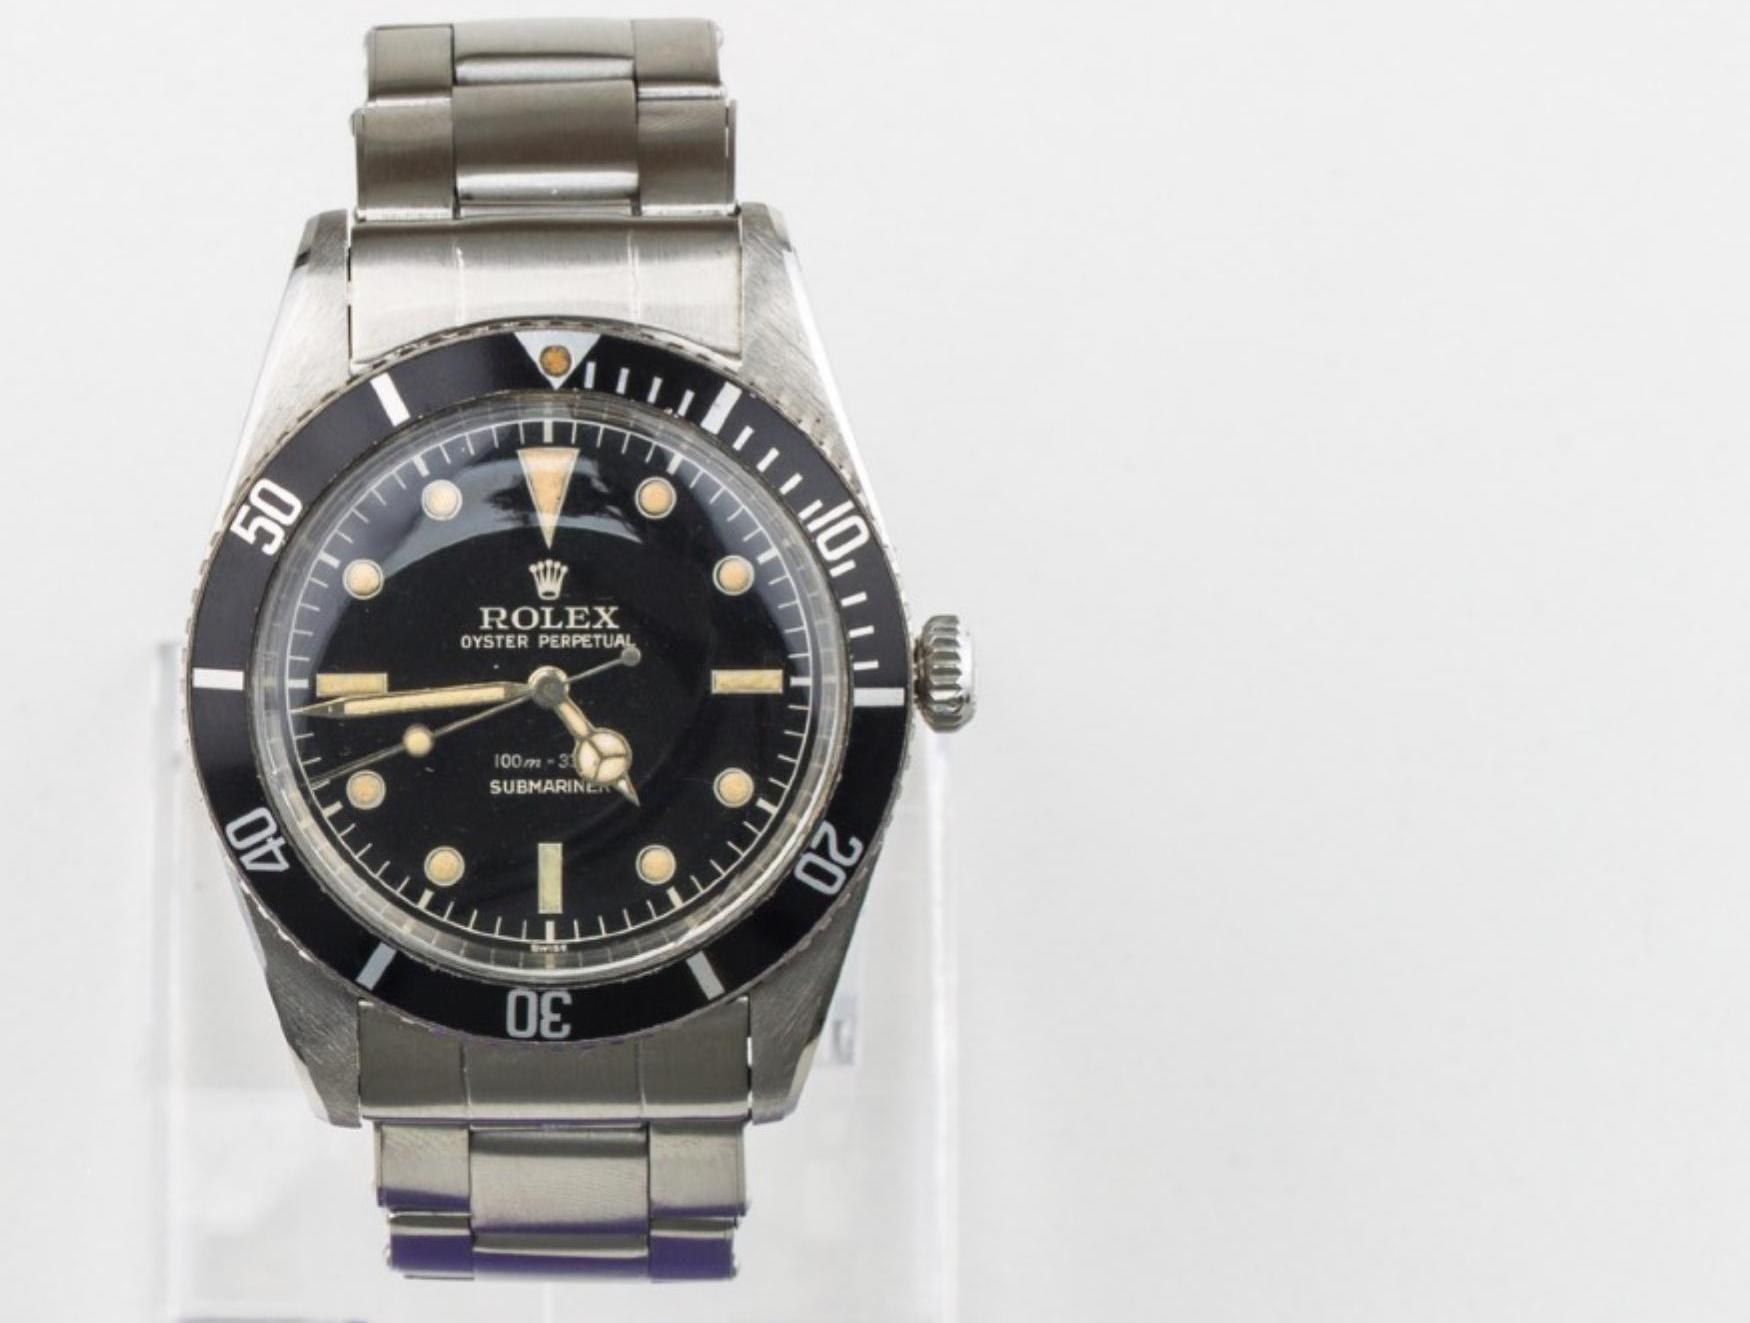 Lot 23 - RARE, Rolex Submariner 5508